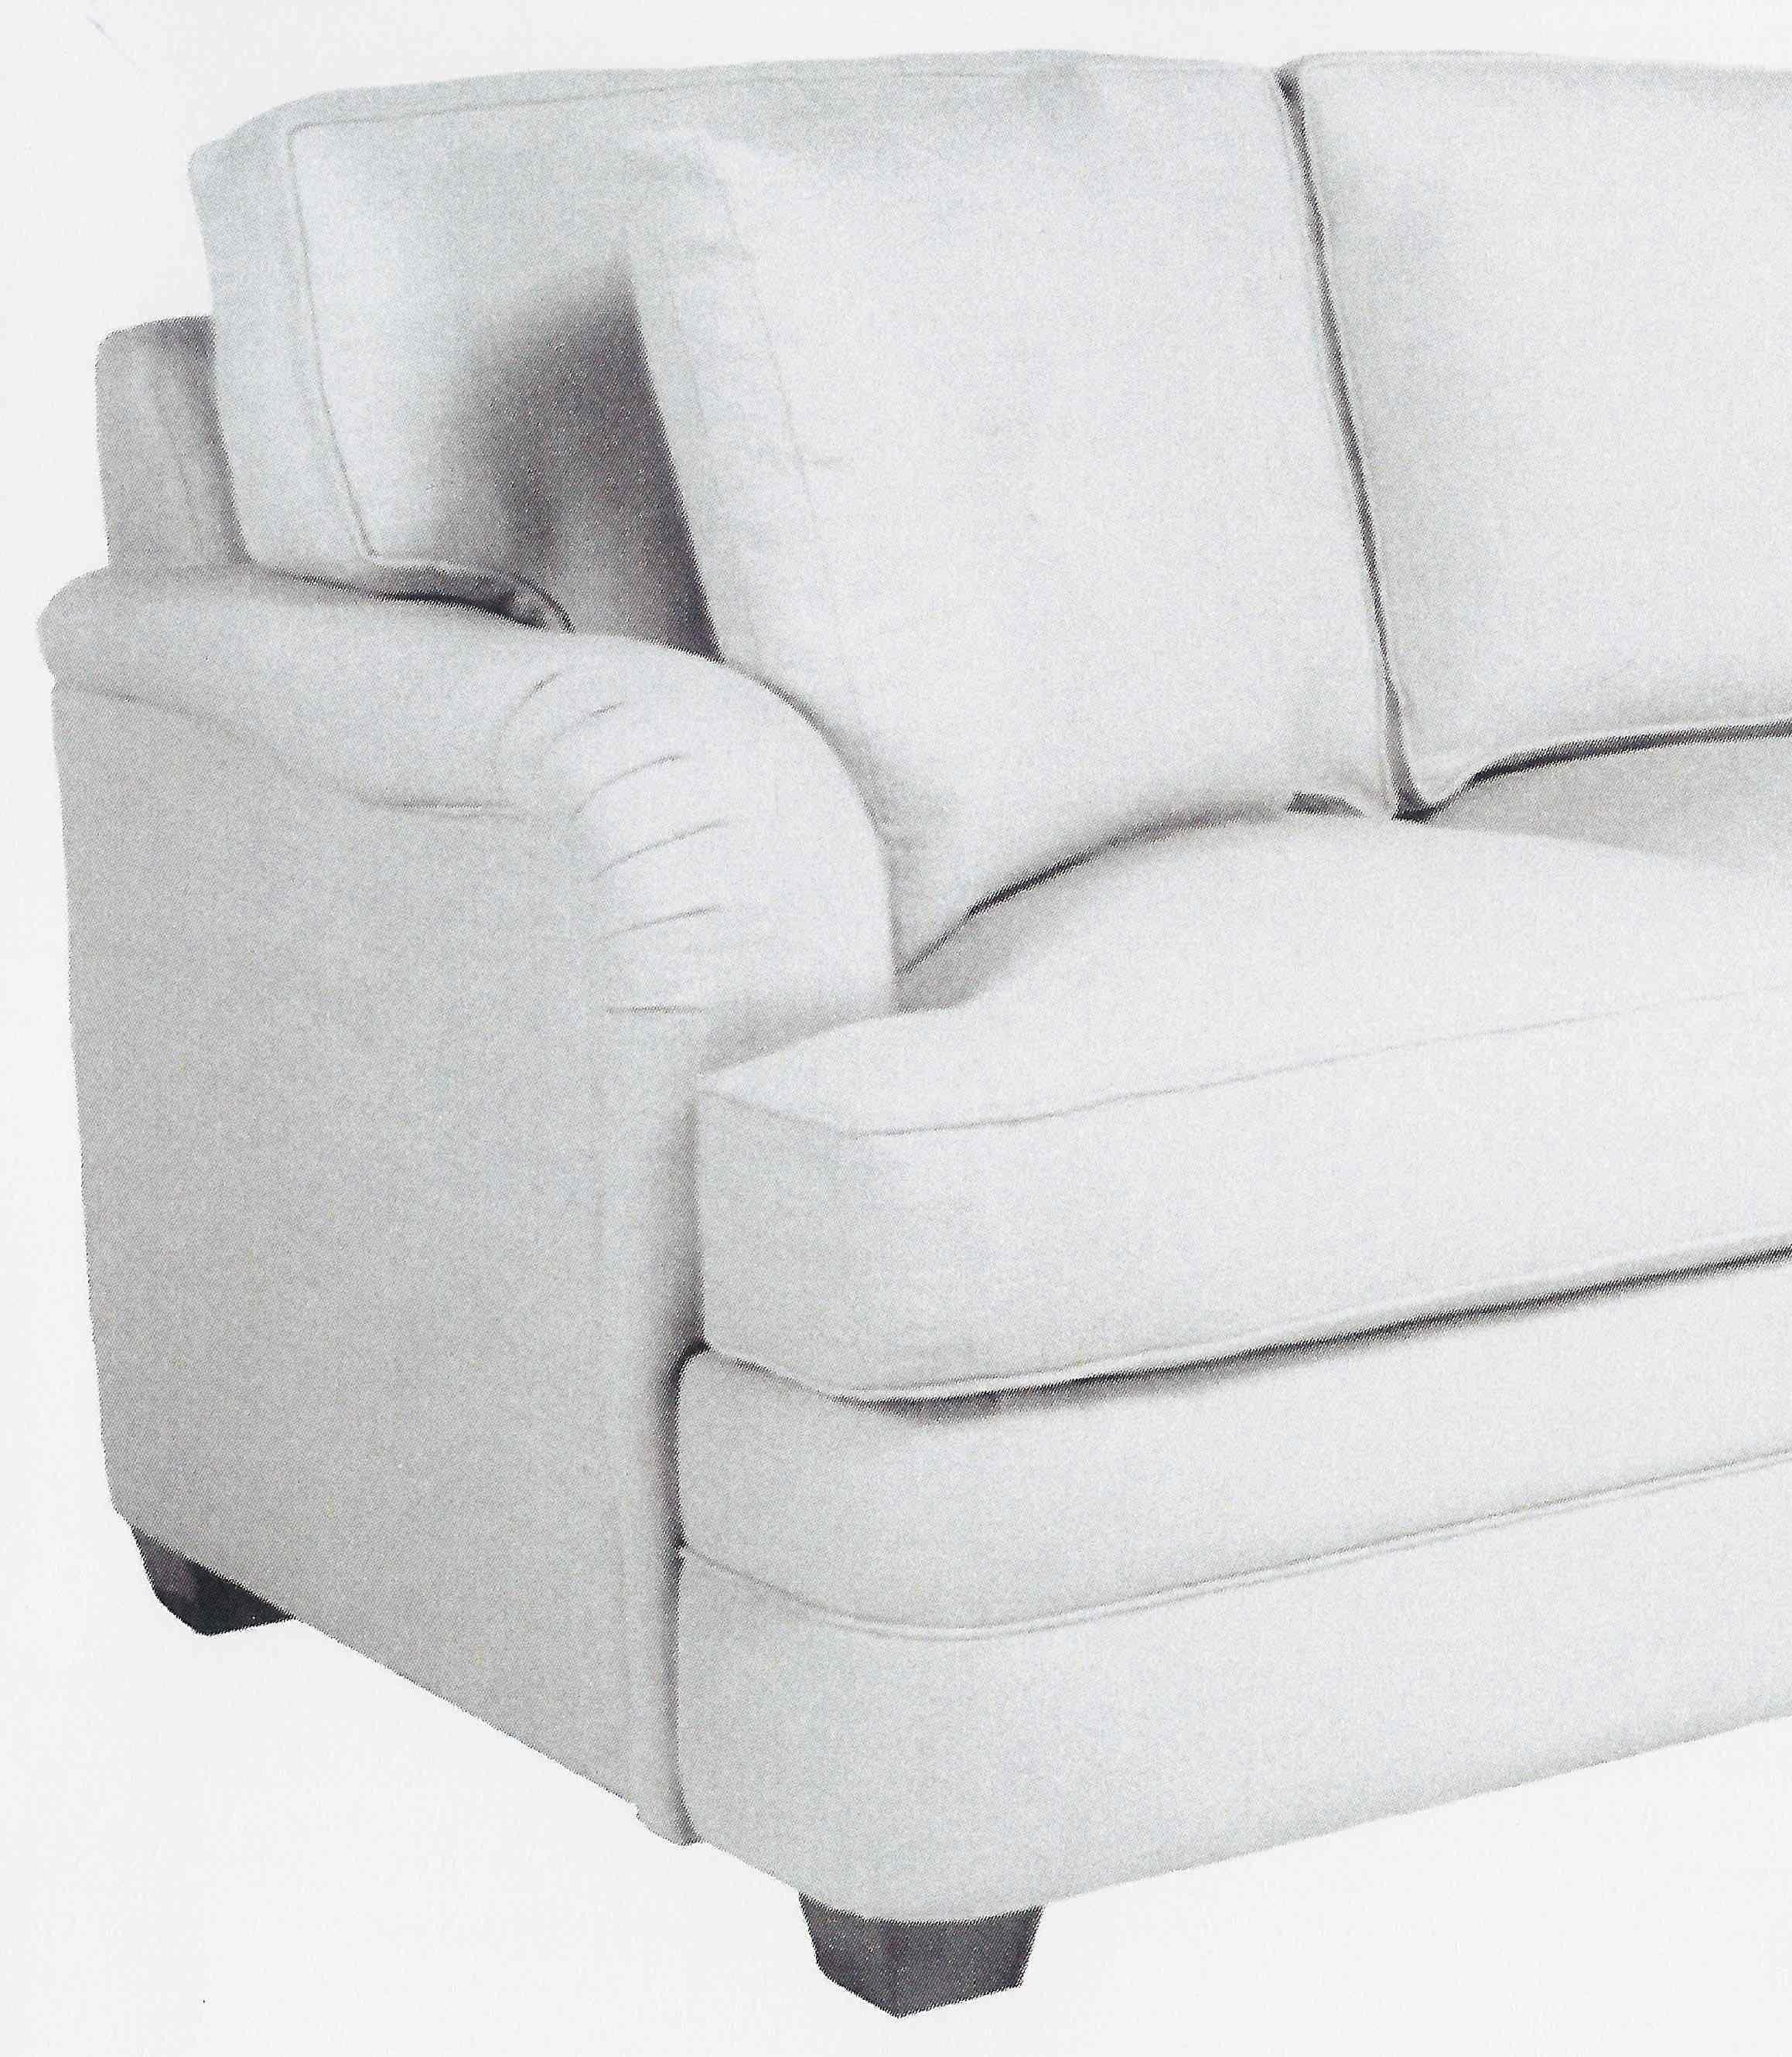 Elasticized covers for any Couch or Loveseat cushions Our custom elasticized cushion slipcovers are your all-in-one solution to freshening up the cushions of any couch or loveseat in your home.